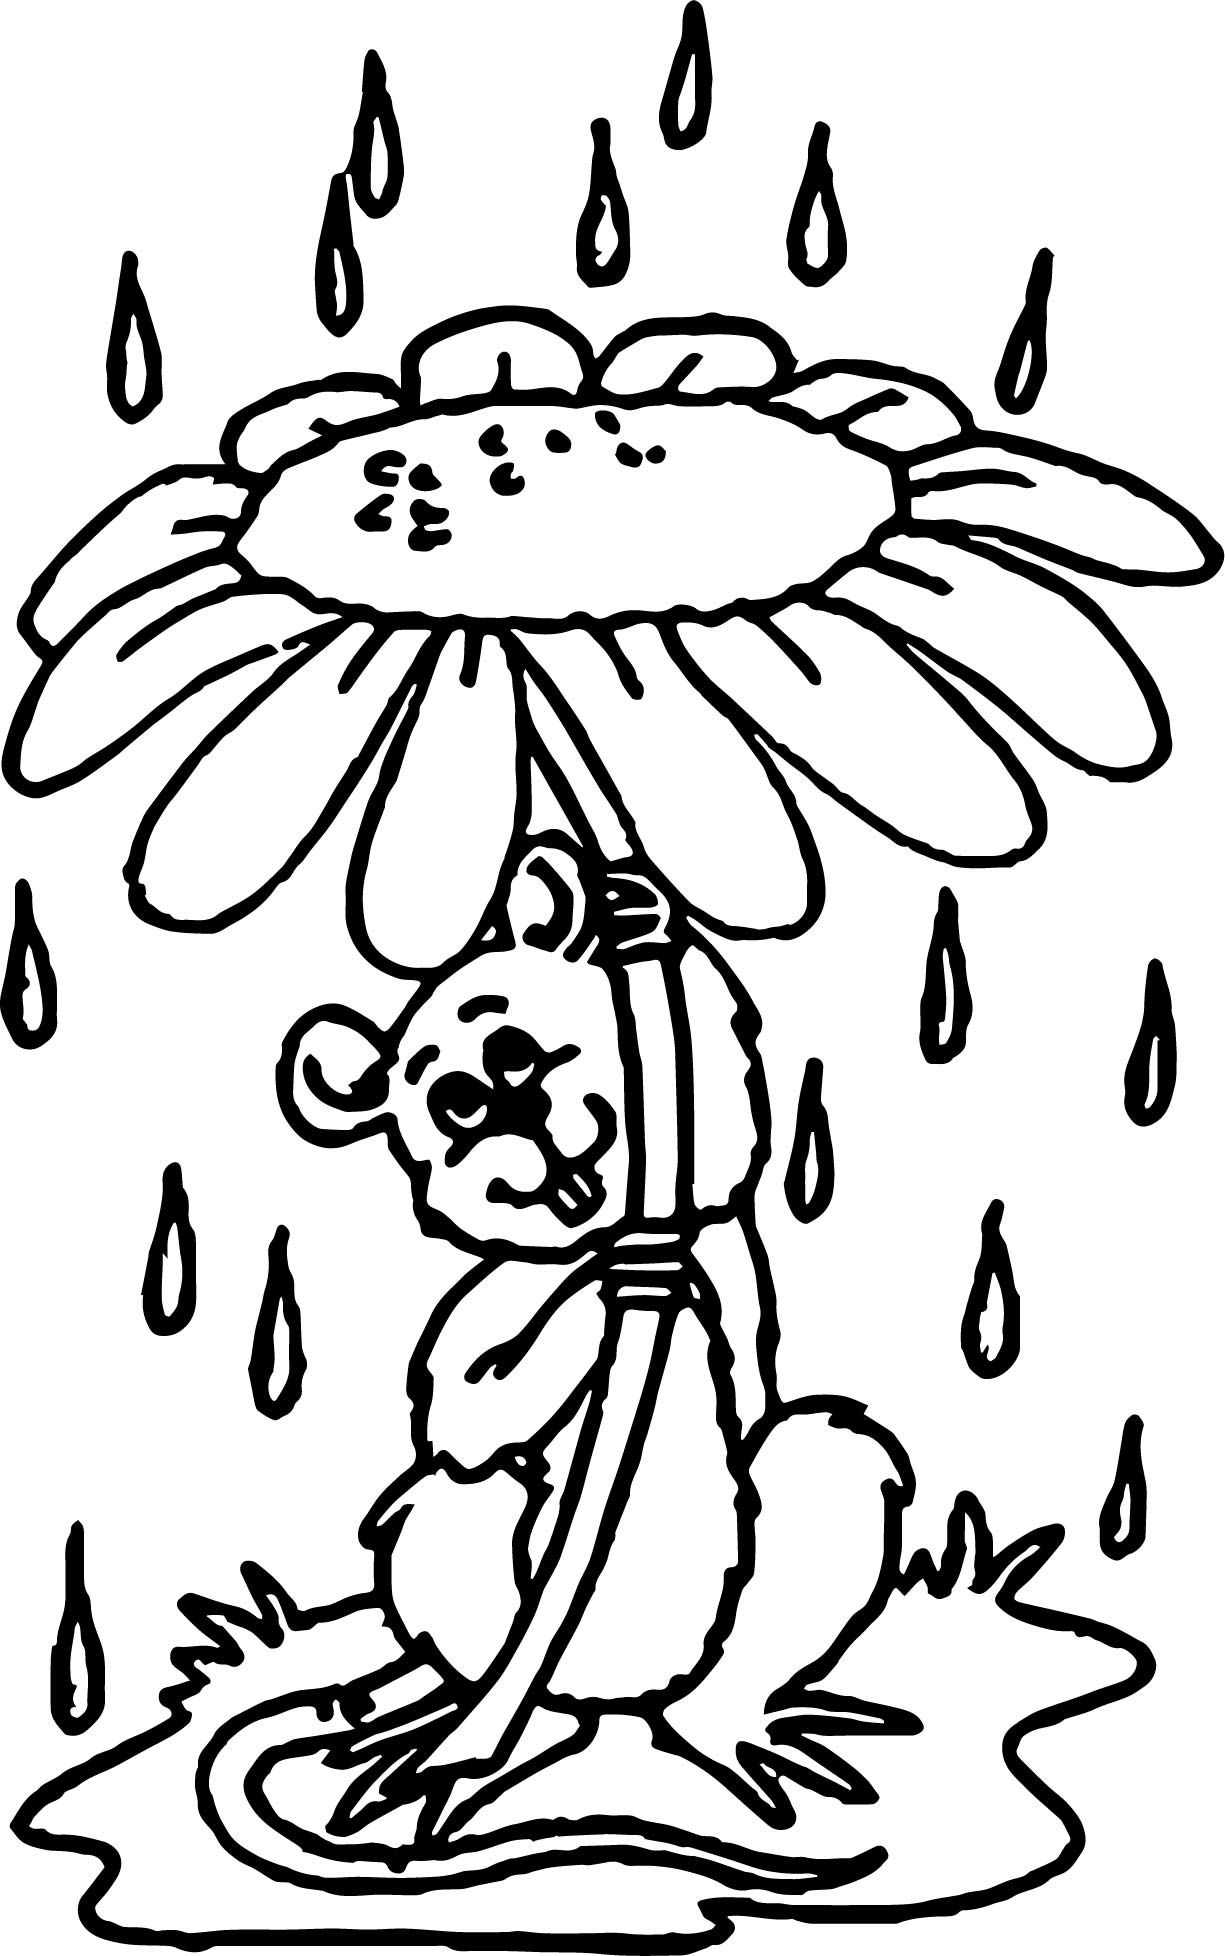 Cool Mouse April Shower Coloring Page Coloring Pages Coloring Pages For Boys April Showers